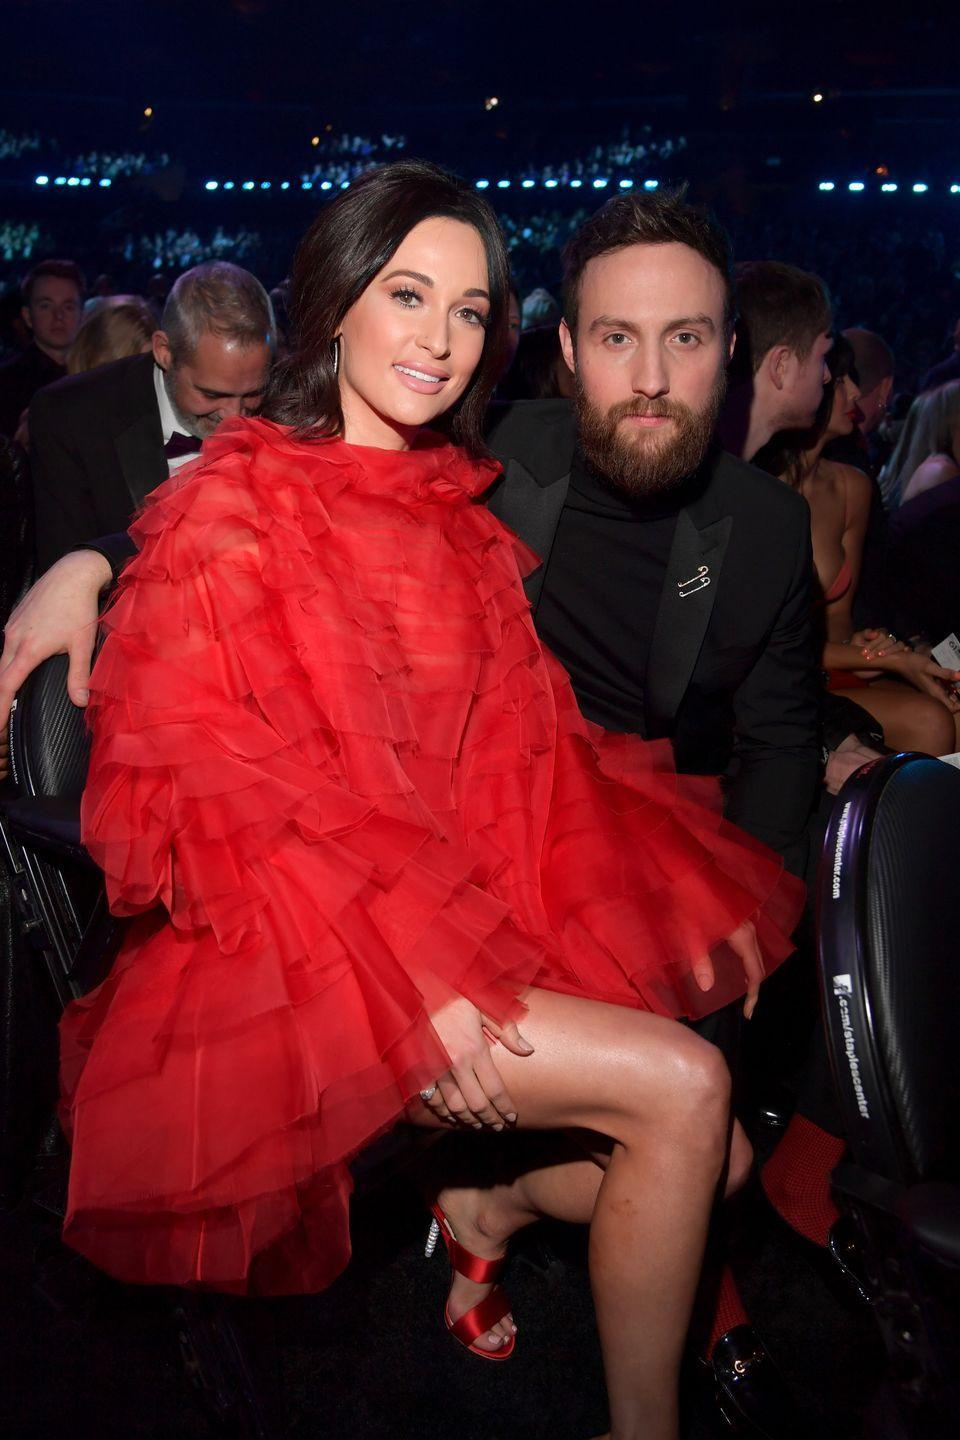 """<p>Kacey Musgraves and Ruston Kelly's cosmic connection was sparked at a songwriter's showcase in 2016 when Kacey gave Ruston her number so they could write together. Two years later, Ruston and Kacey tied the knot, but ran into trouble sometime this summer. They announced their split in July. </p><p>""""Though we are parting ways in marriage, we will remain true friends for the rest of our lives. We hold no blame, anger, or contempt for each other and we ask for privacy and positive wishes for us both as we learn how to navigate through this,"""" they wrote in a statement to <em><a href=""""https://people.com/country/kacey-musgraves-ruston-kelly-split-everything-theyve-said-about-relationship/"""" rel=""""nofollow noopener"""" target=""""_blank"""" data-ylk=""""slk:People"""" class=""""link rapid-noclick-resp"""">People</a></em>.</p>"""